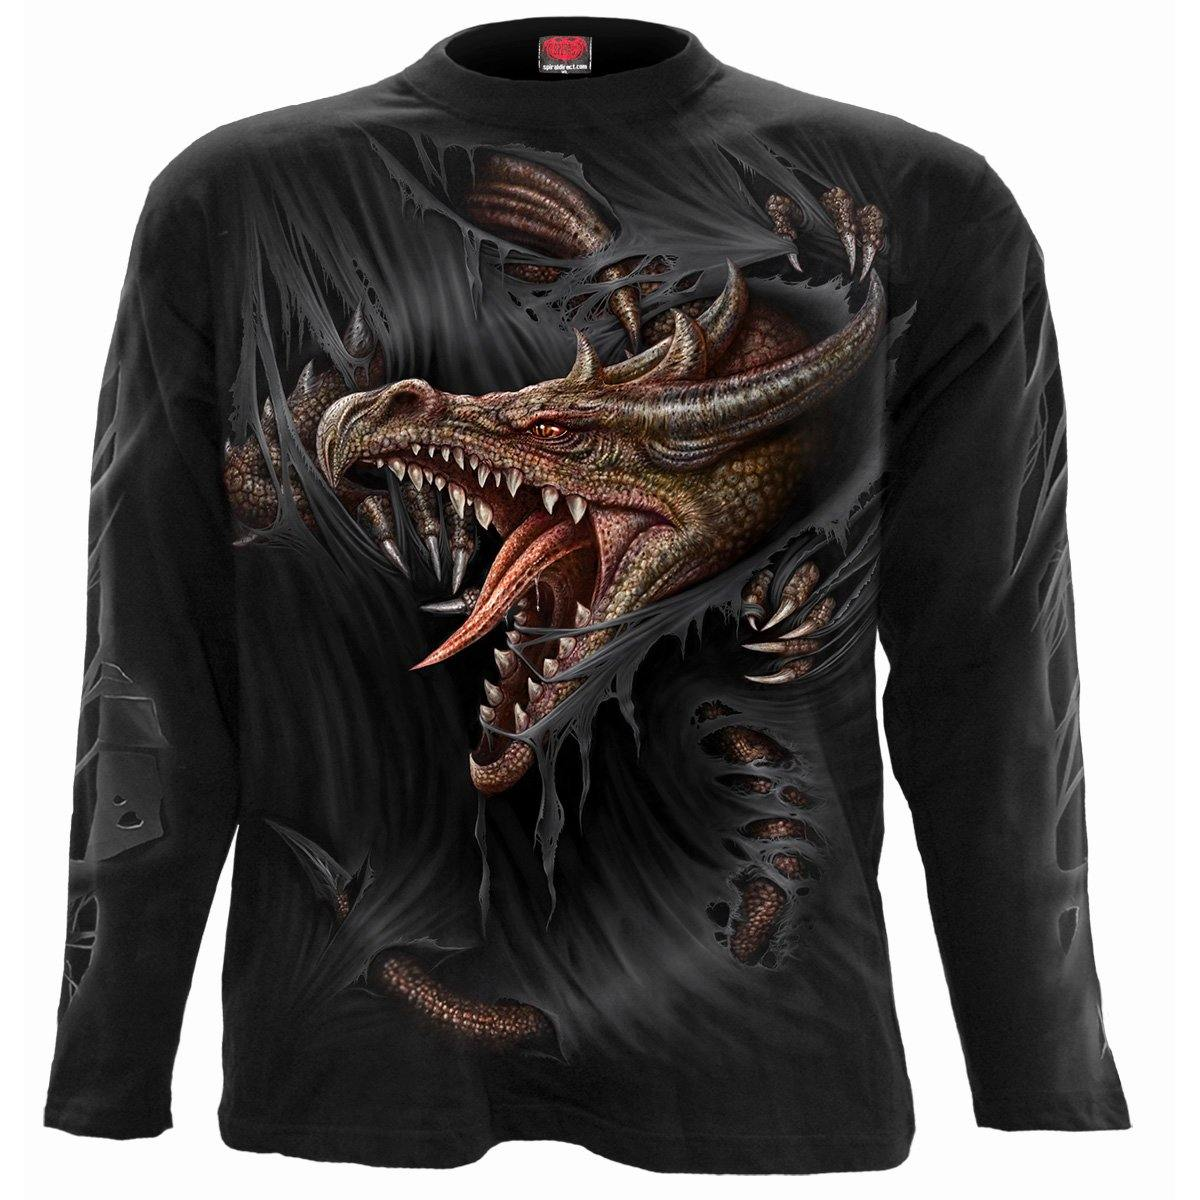 BREAKING OUT - Dragon Awakens Longsleeve Shirt